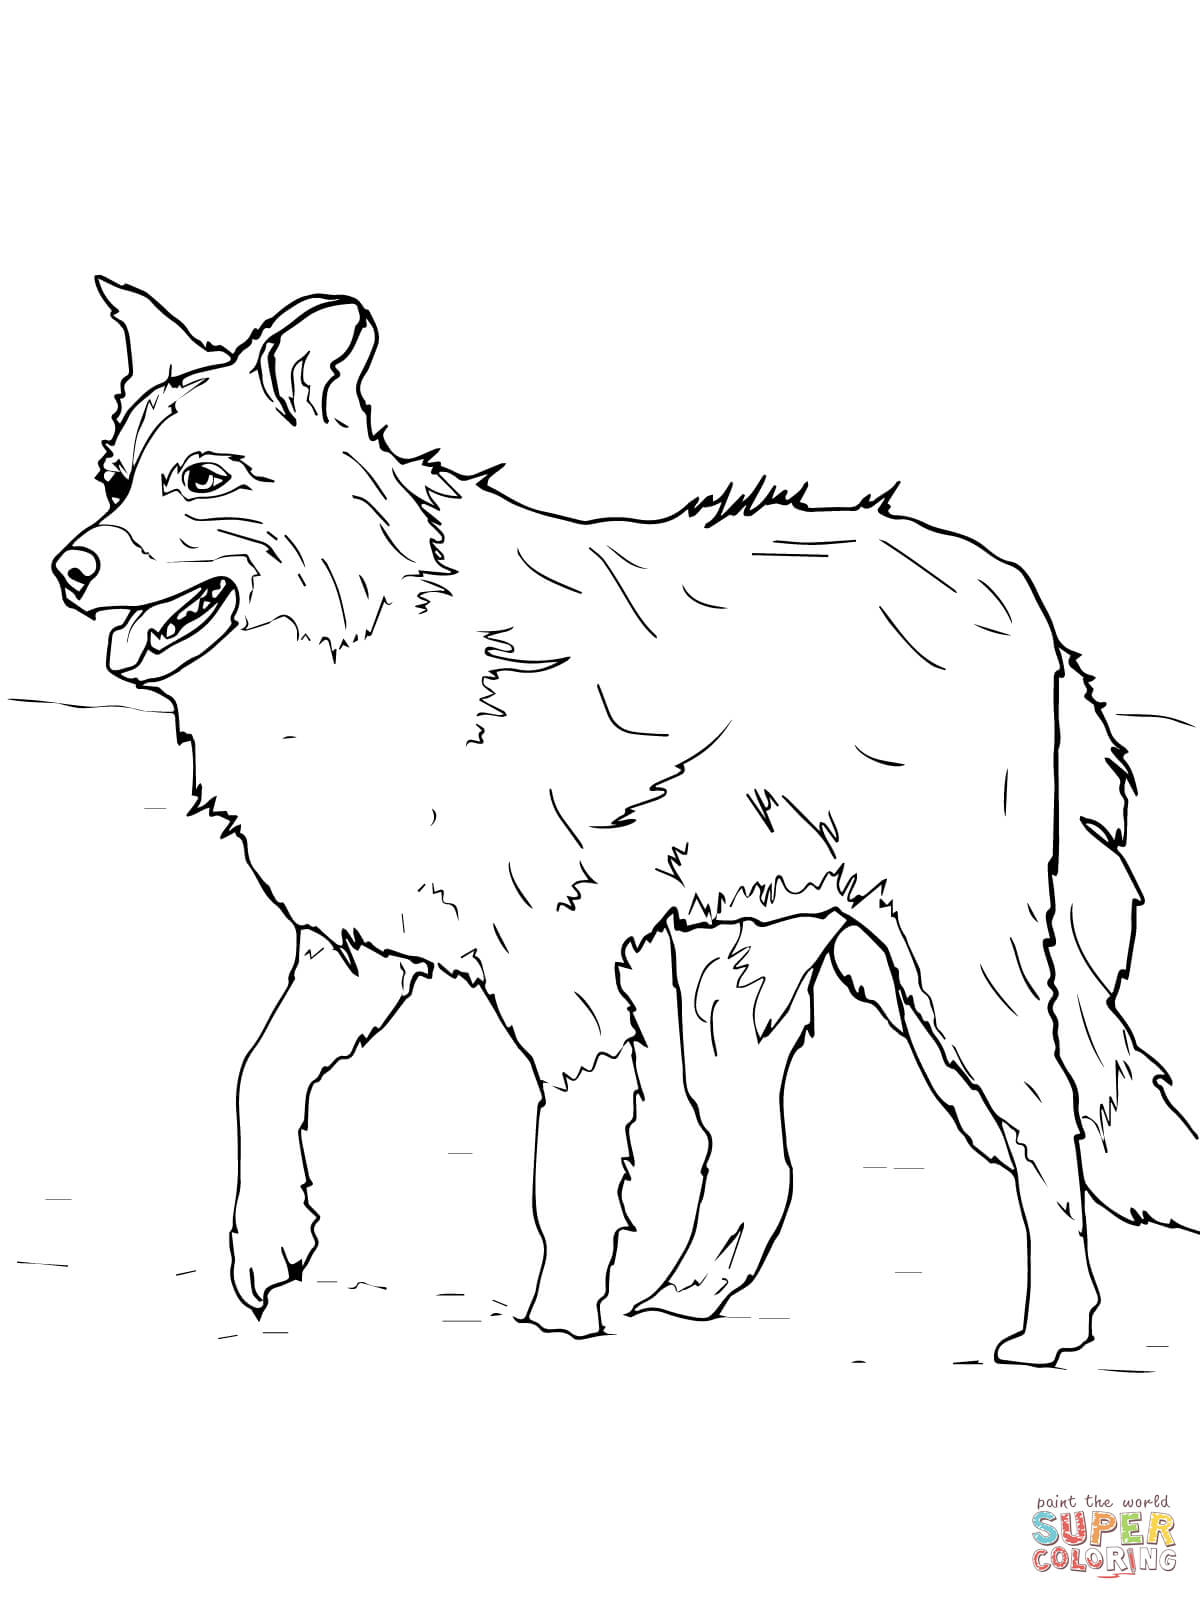 Scotch Sheep Dog Or Border Collie Coloring Page